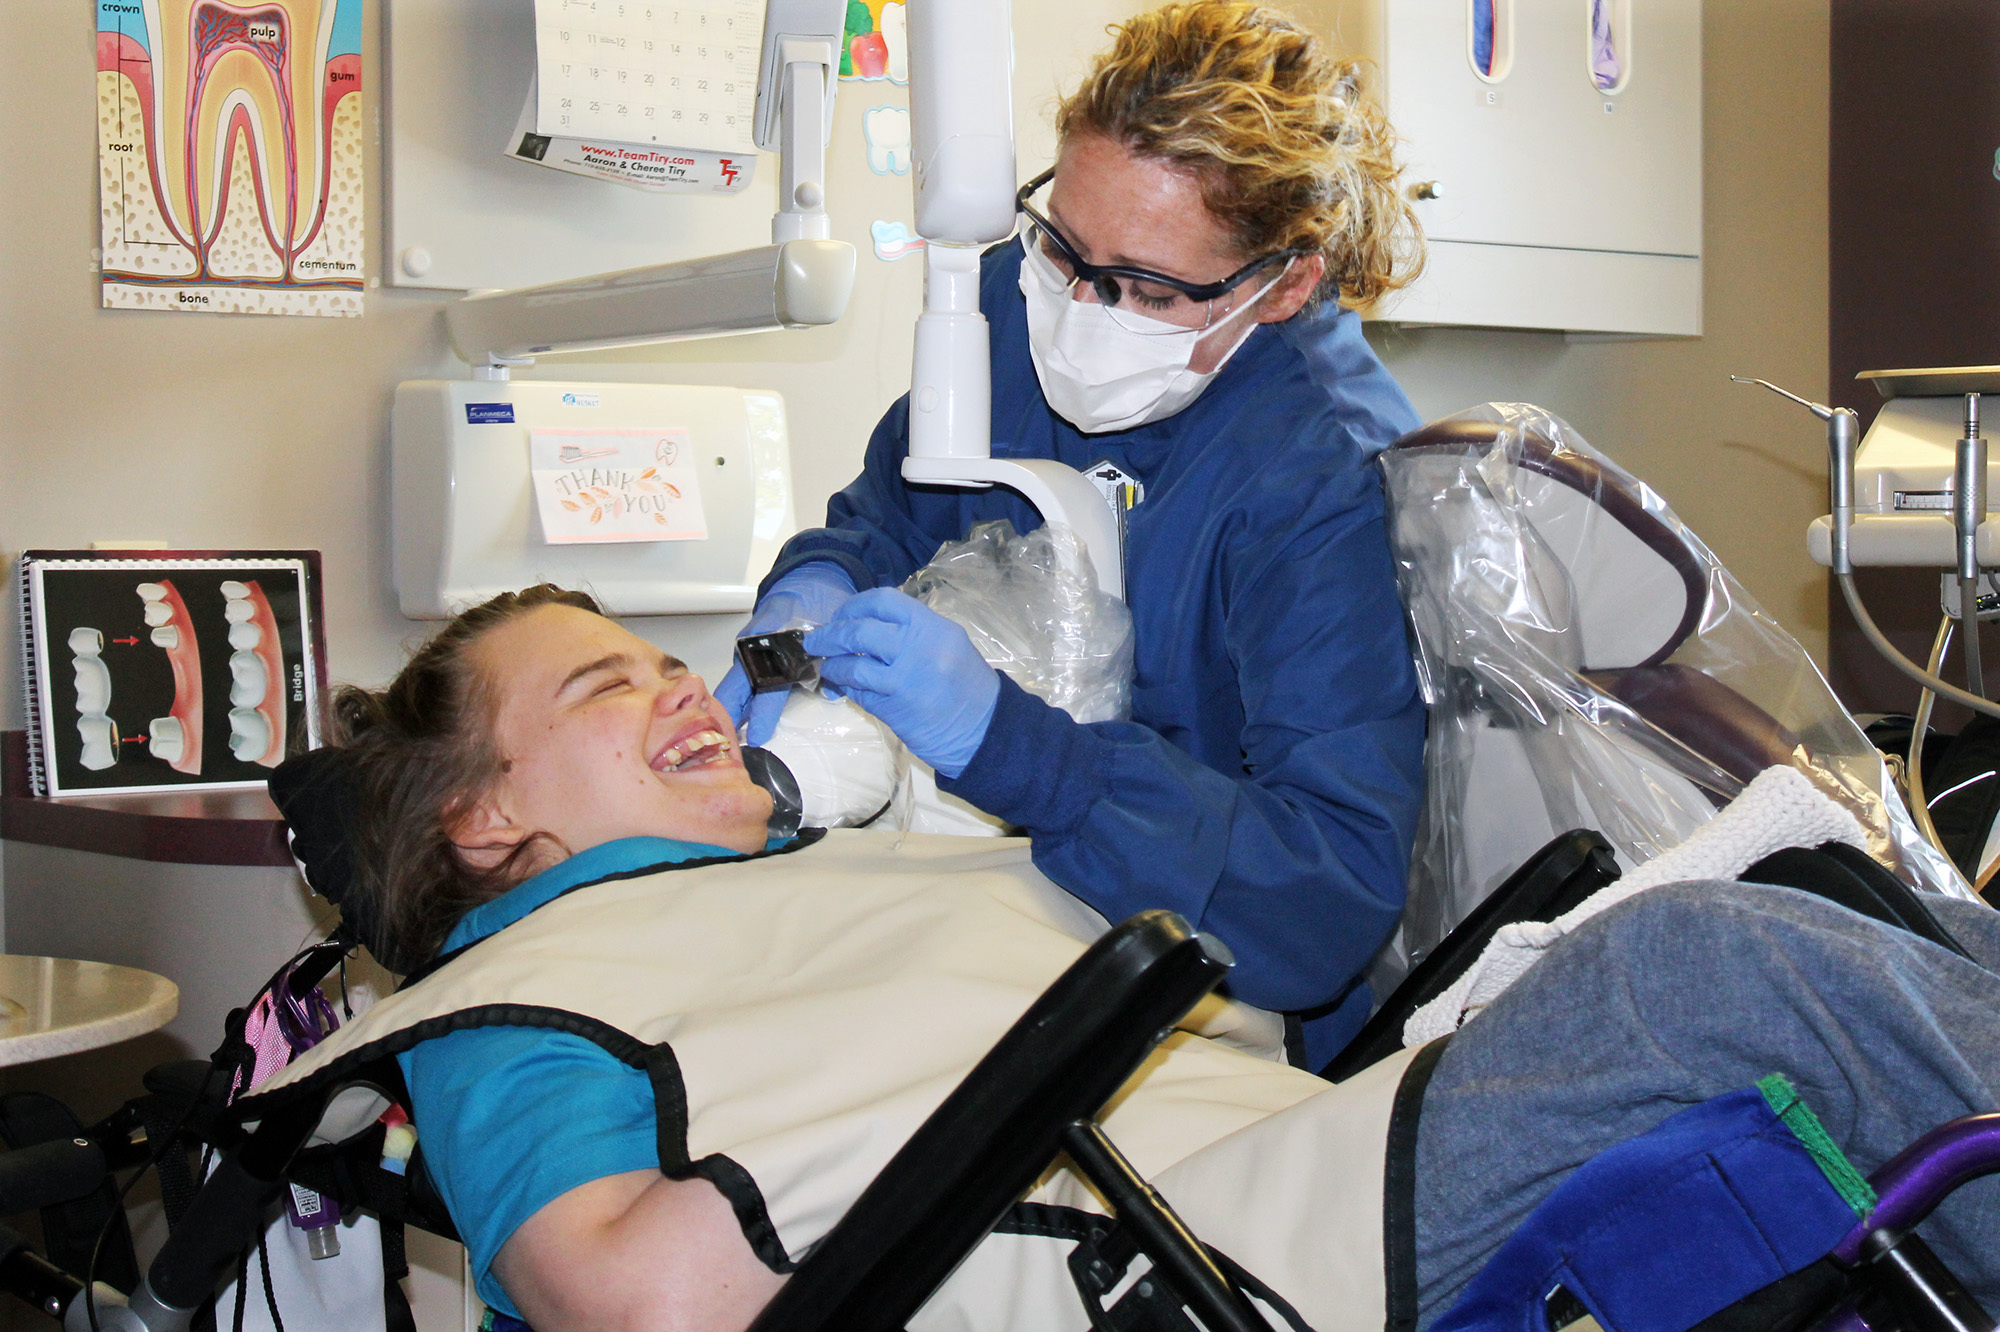 Getting Dental Care Can Be A Challenge For People With